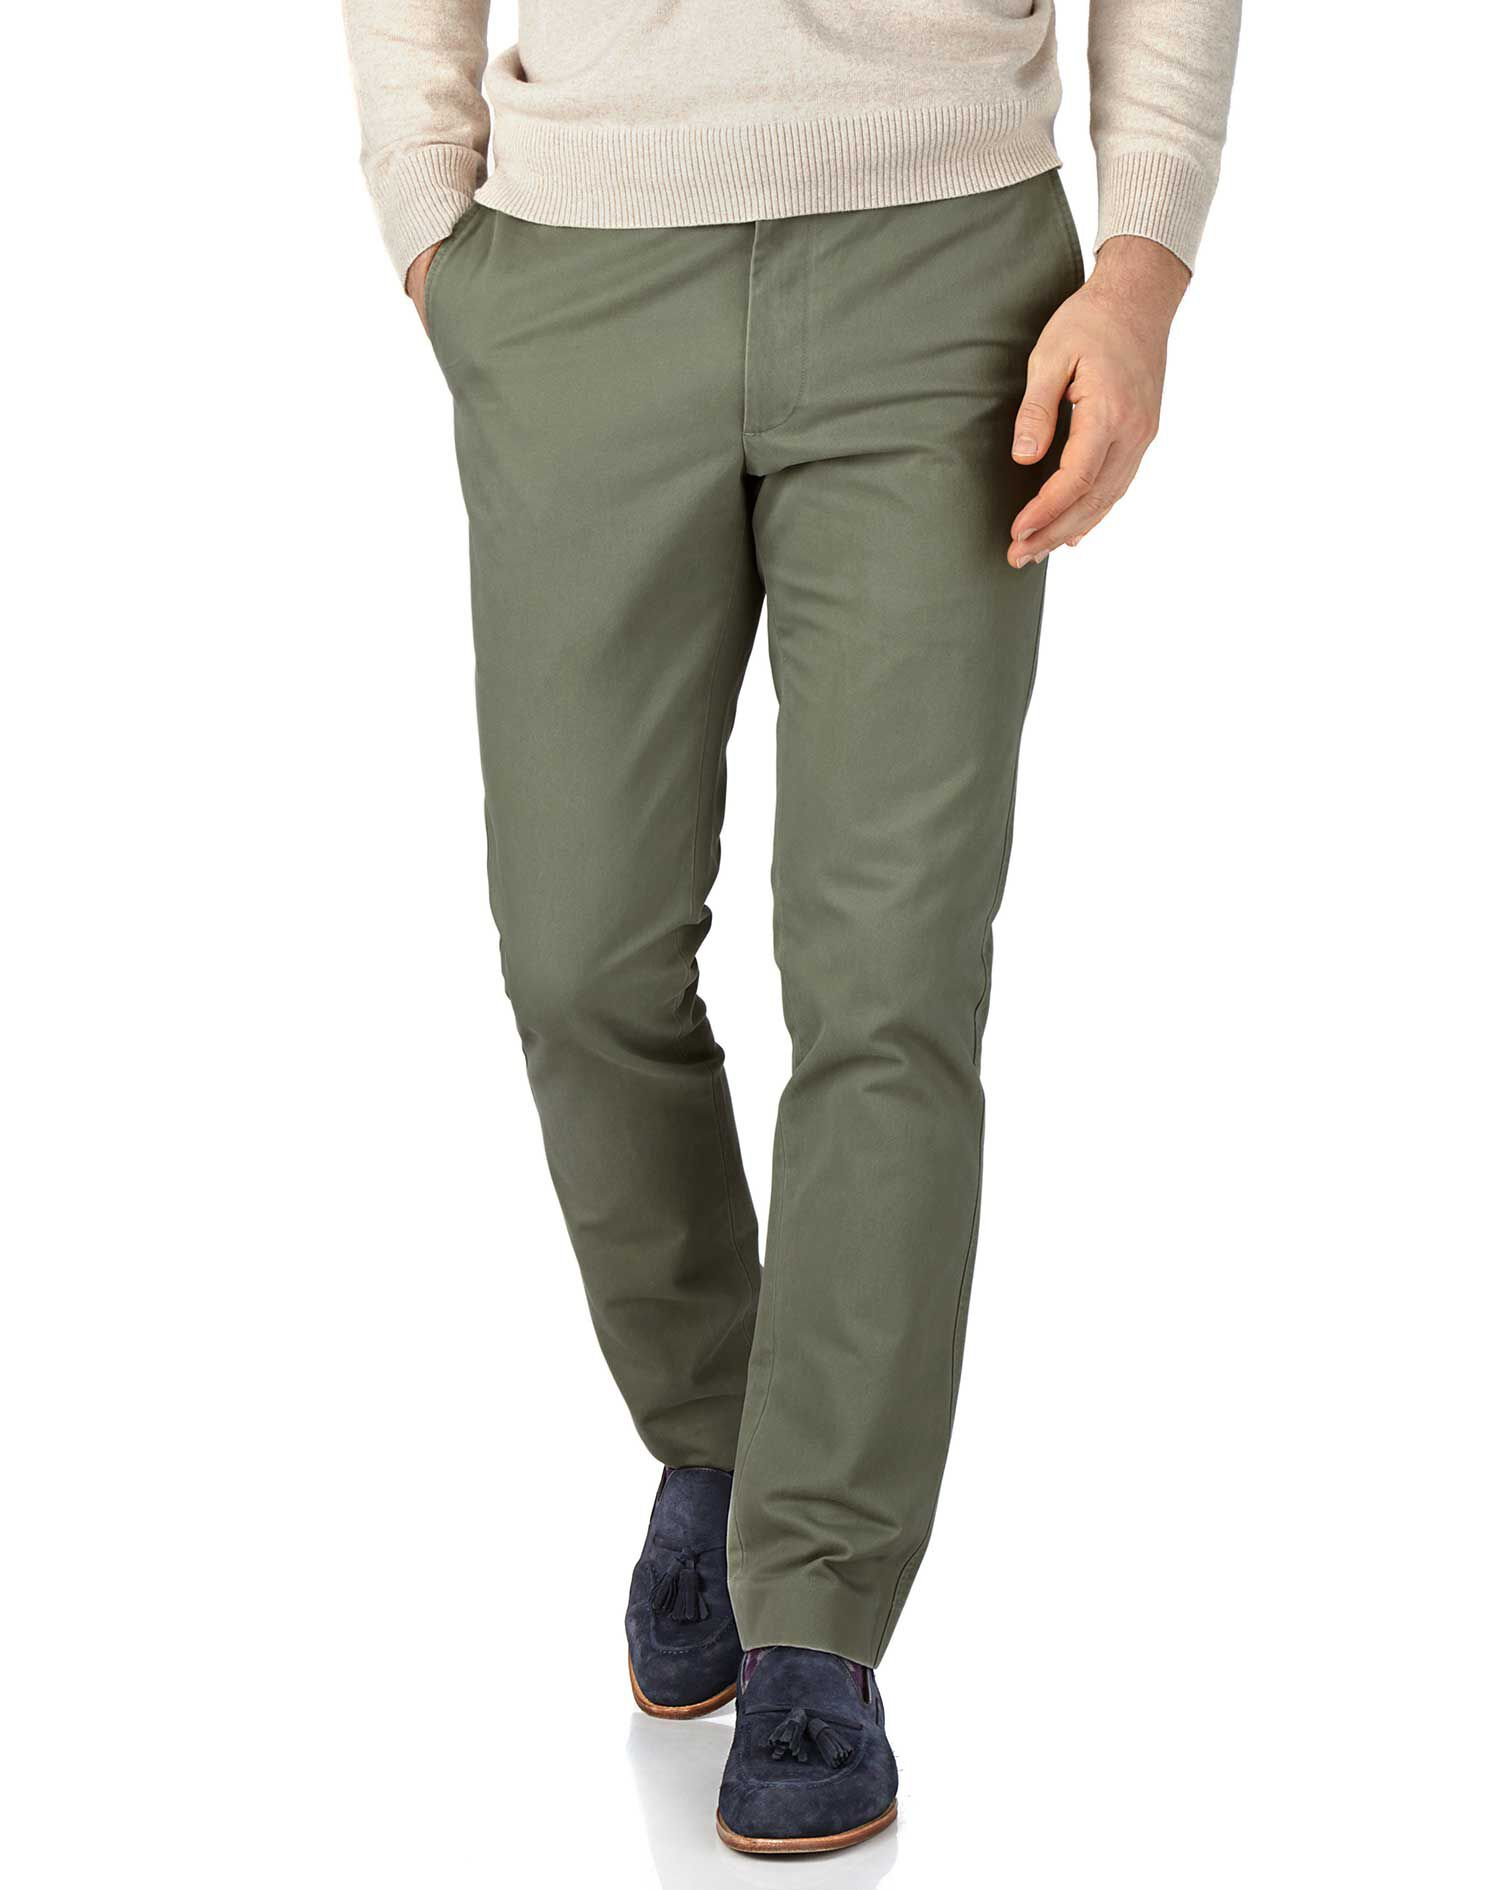 Light Green Extra Slim Fit Flat Front Cotton Chino Trousers Size W36 L29 by Charles Tyrwhitt